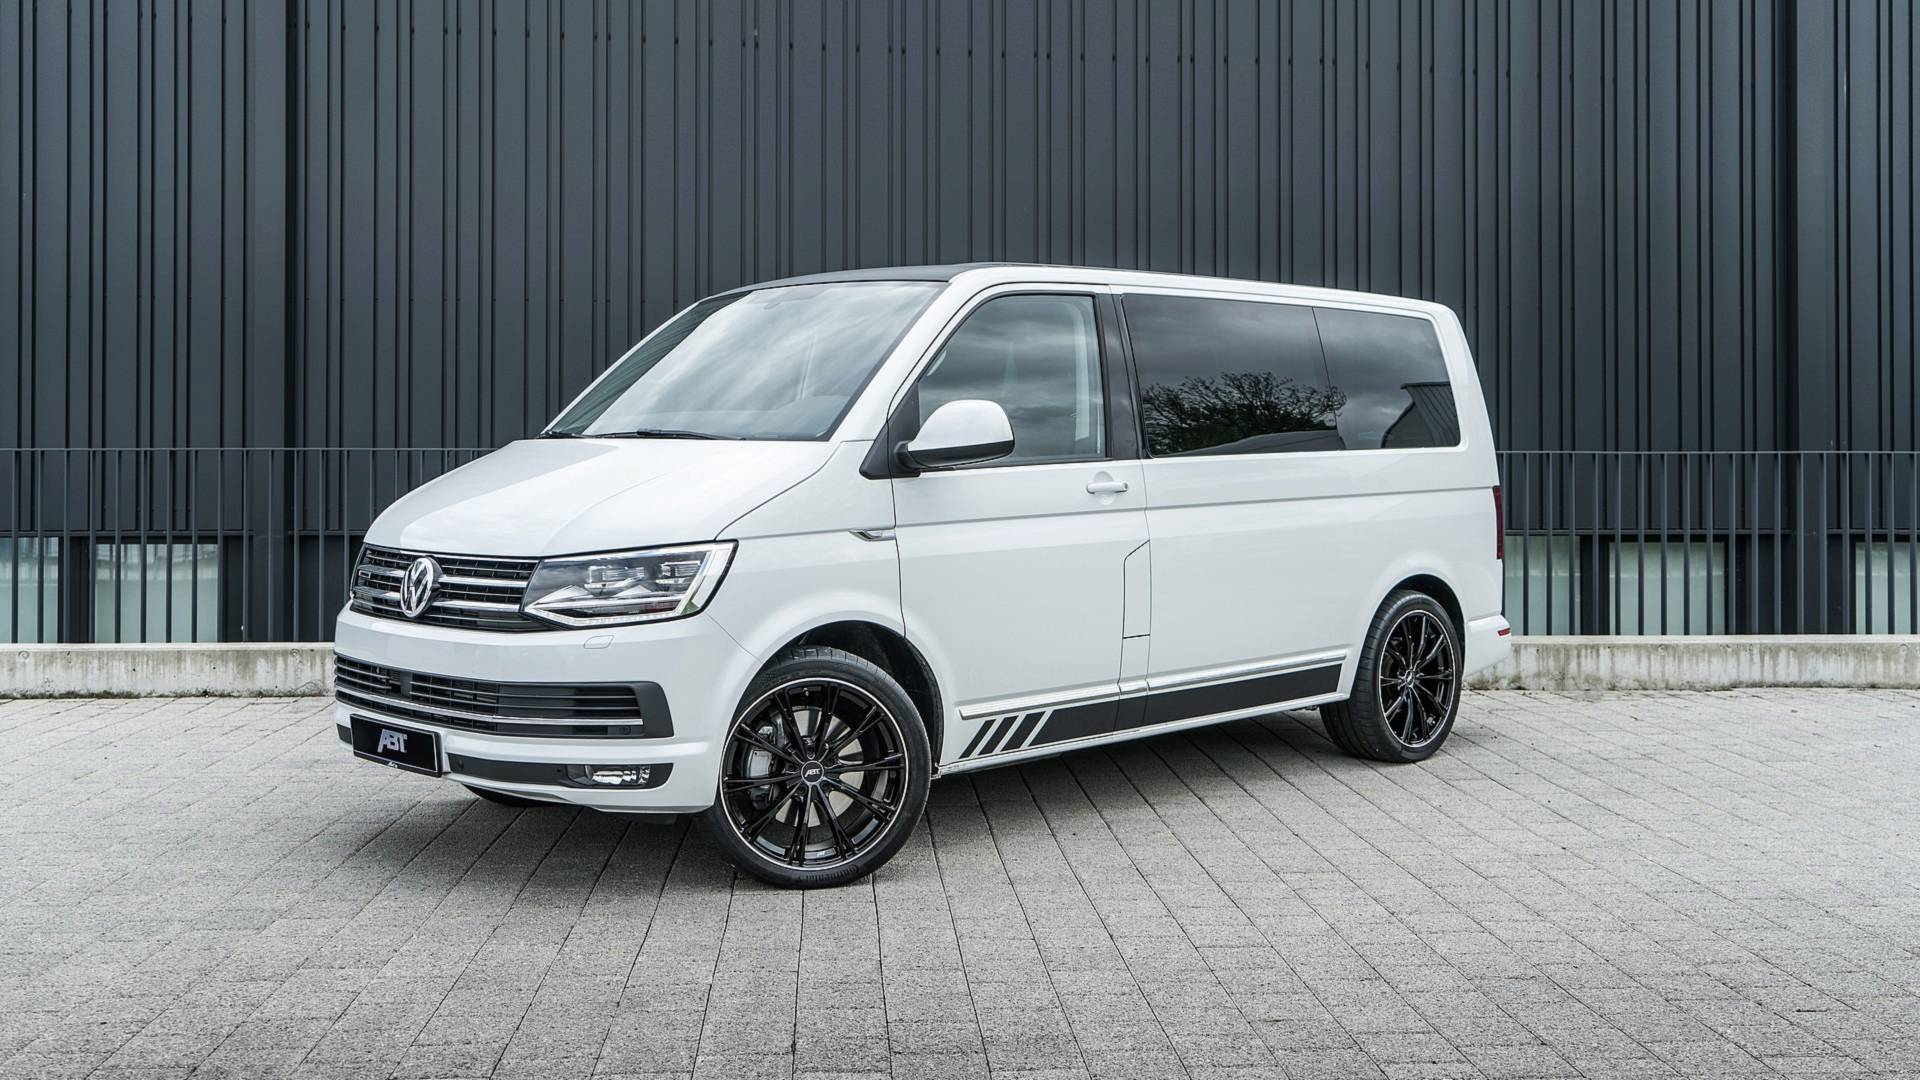 236 Horsepower Vw T6 With 20 Inch Wheels Is Not Your Ordinary Van